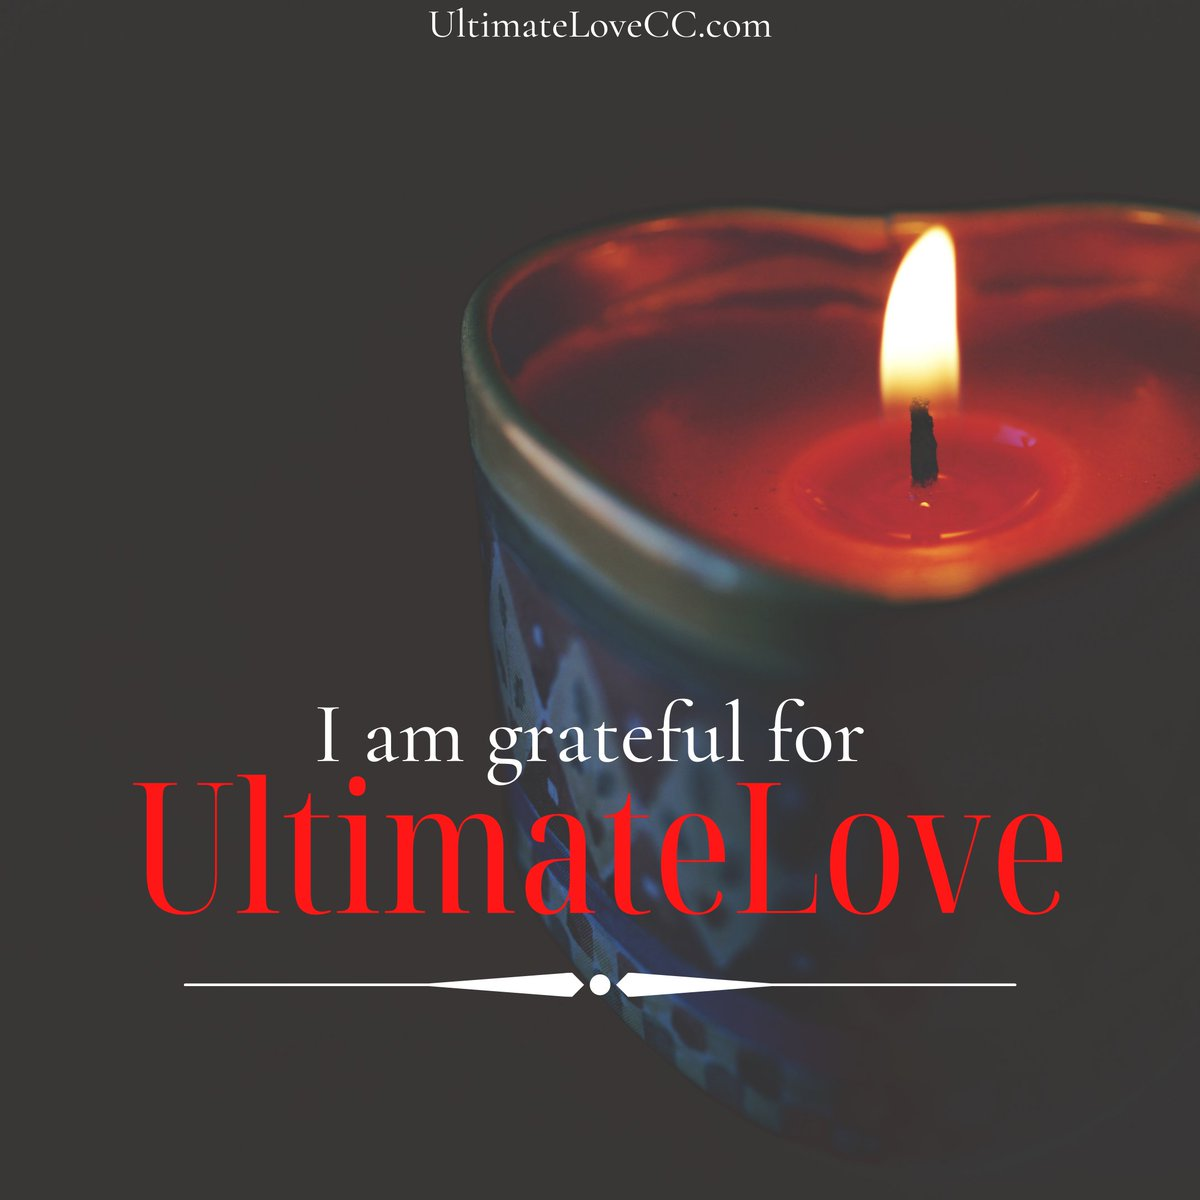 Visit https://t.co/JmuDQvR9Ub! #UltimateLoveCC #RelationshipCoaching #OnlineCounseling #AnxietyRelief #AnxietyControl #DepressionHelp #Counseling https://t.co/DWSXoAzOzj